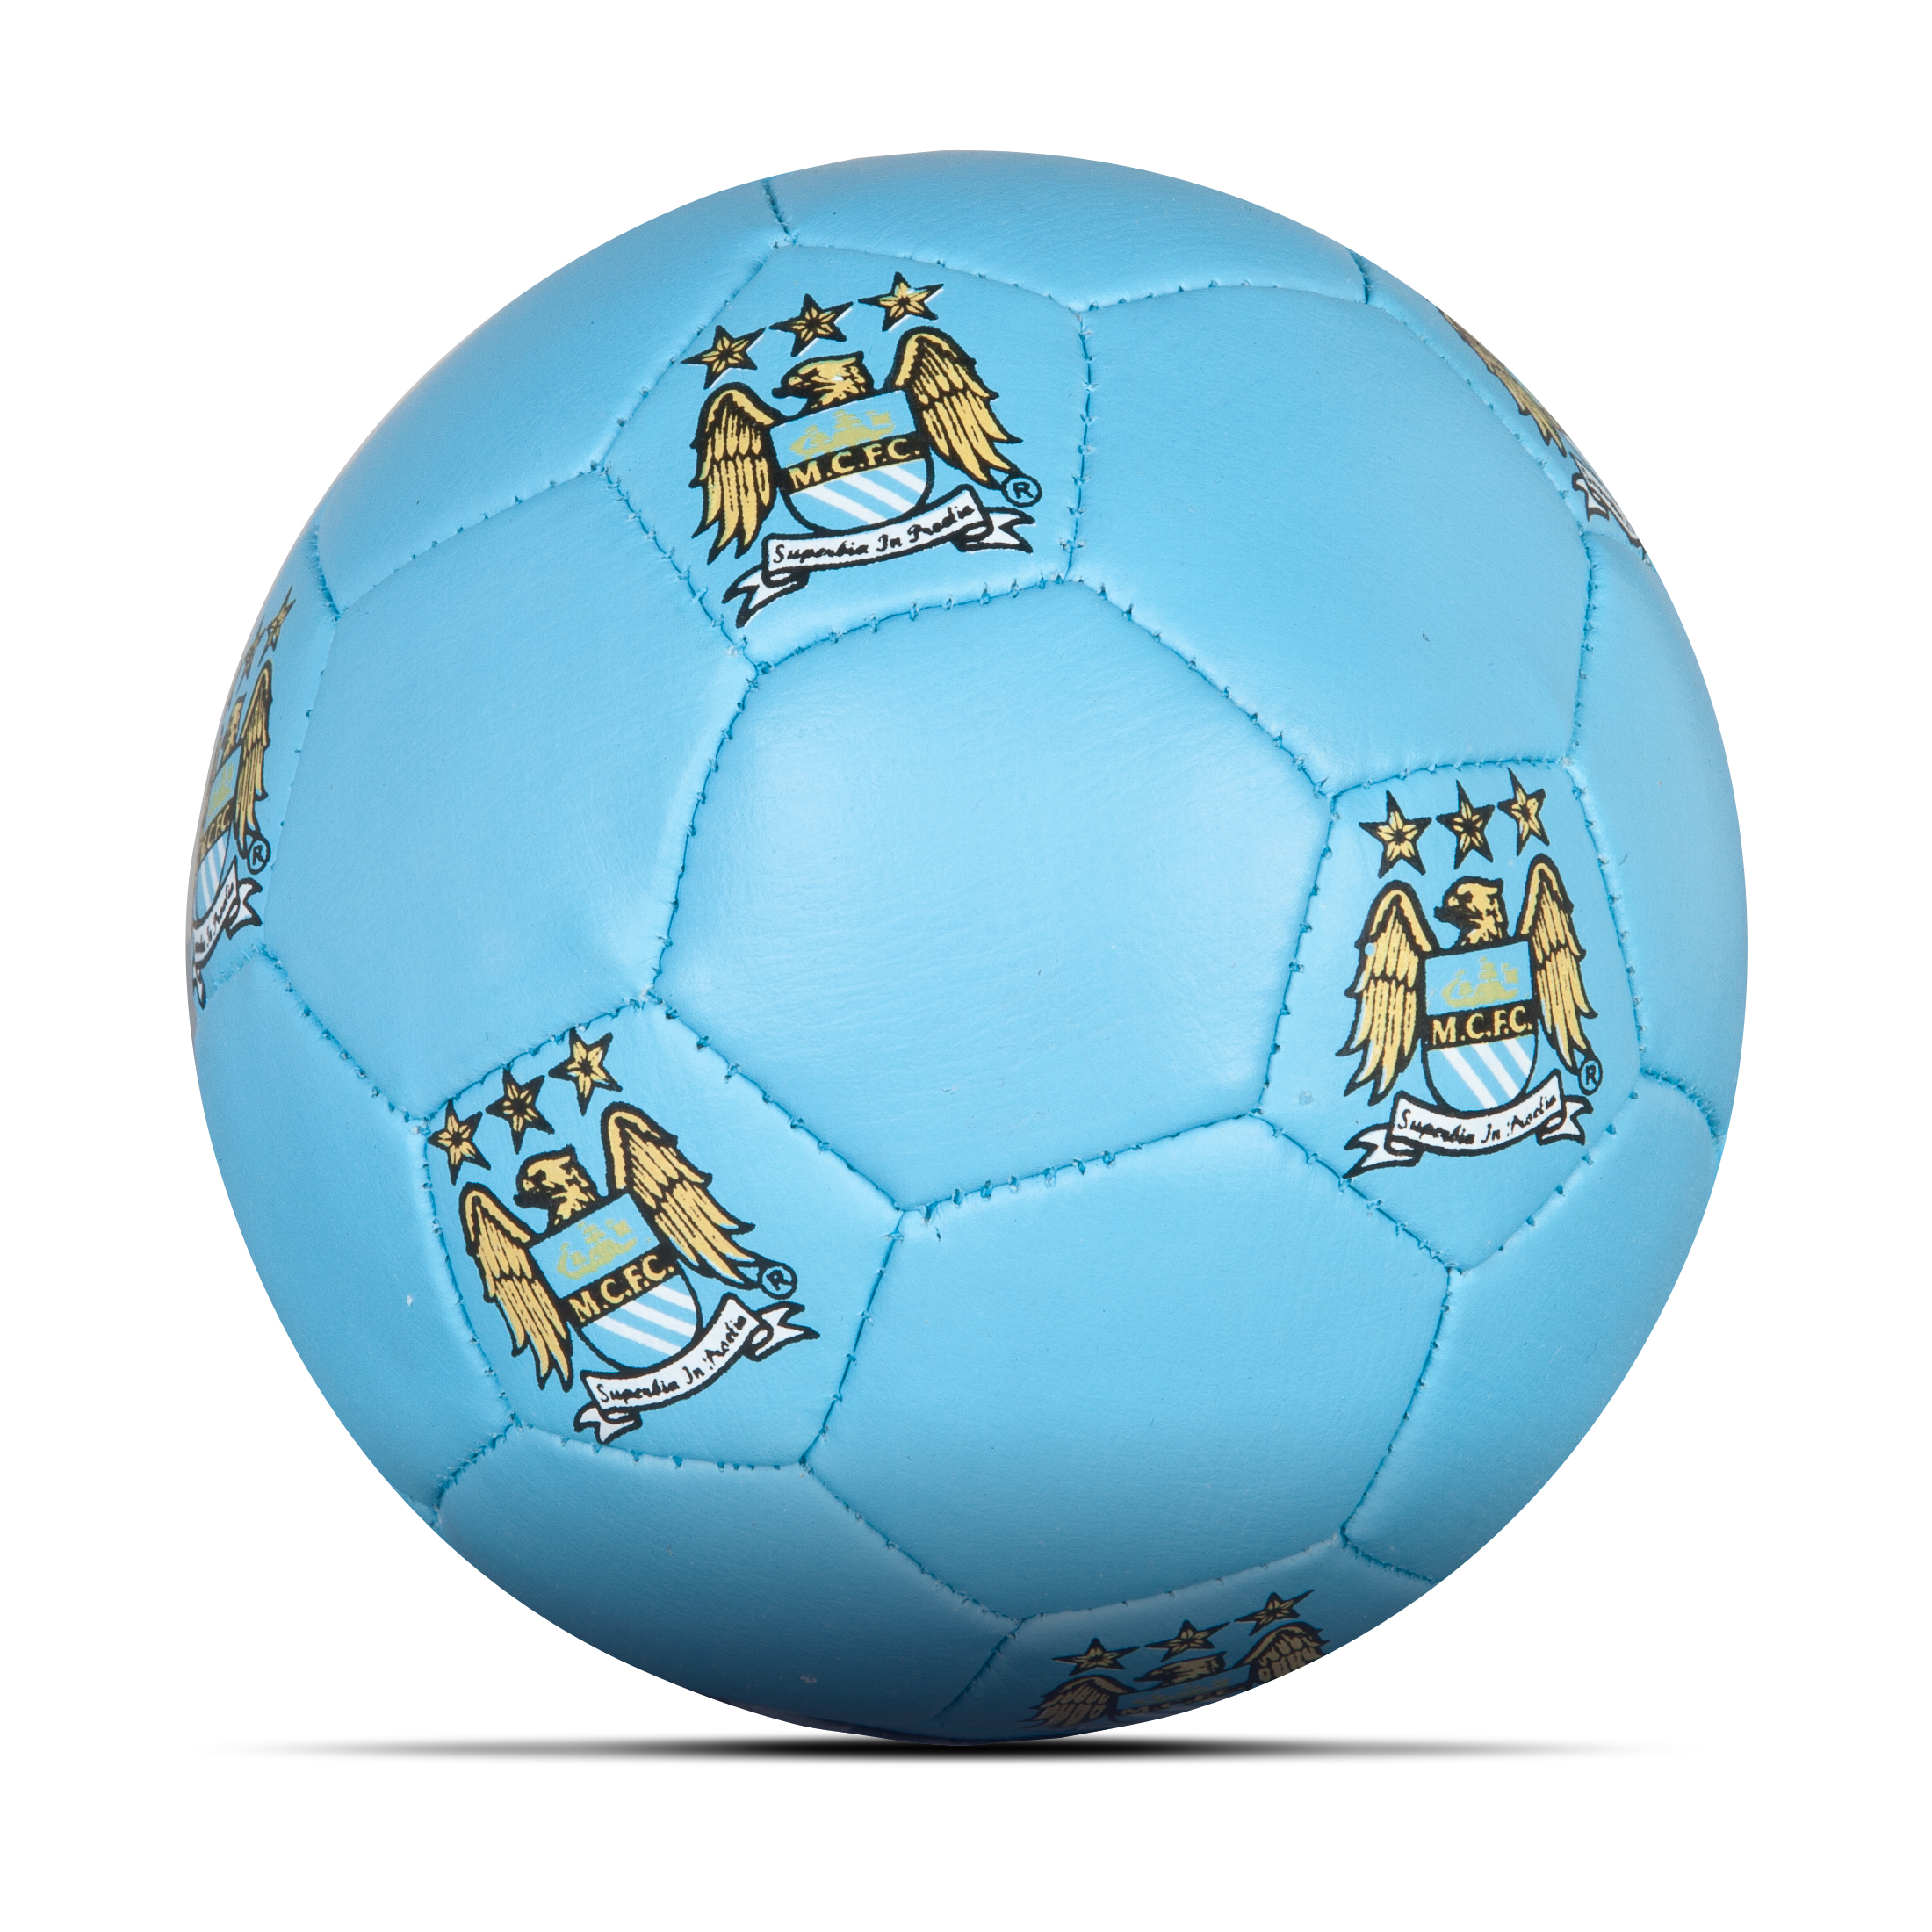 Manchester City 4 inch Mini Ball in Clampack